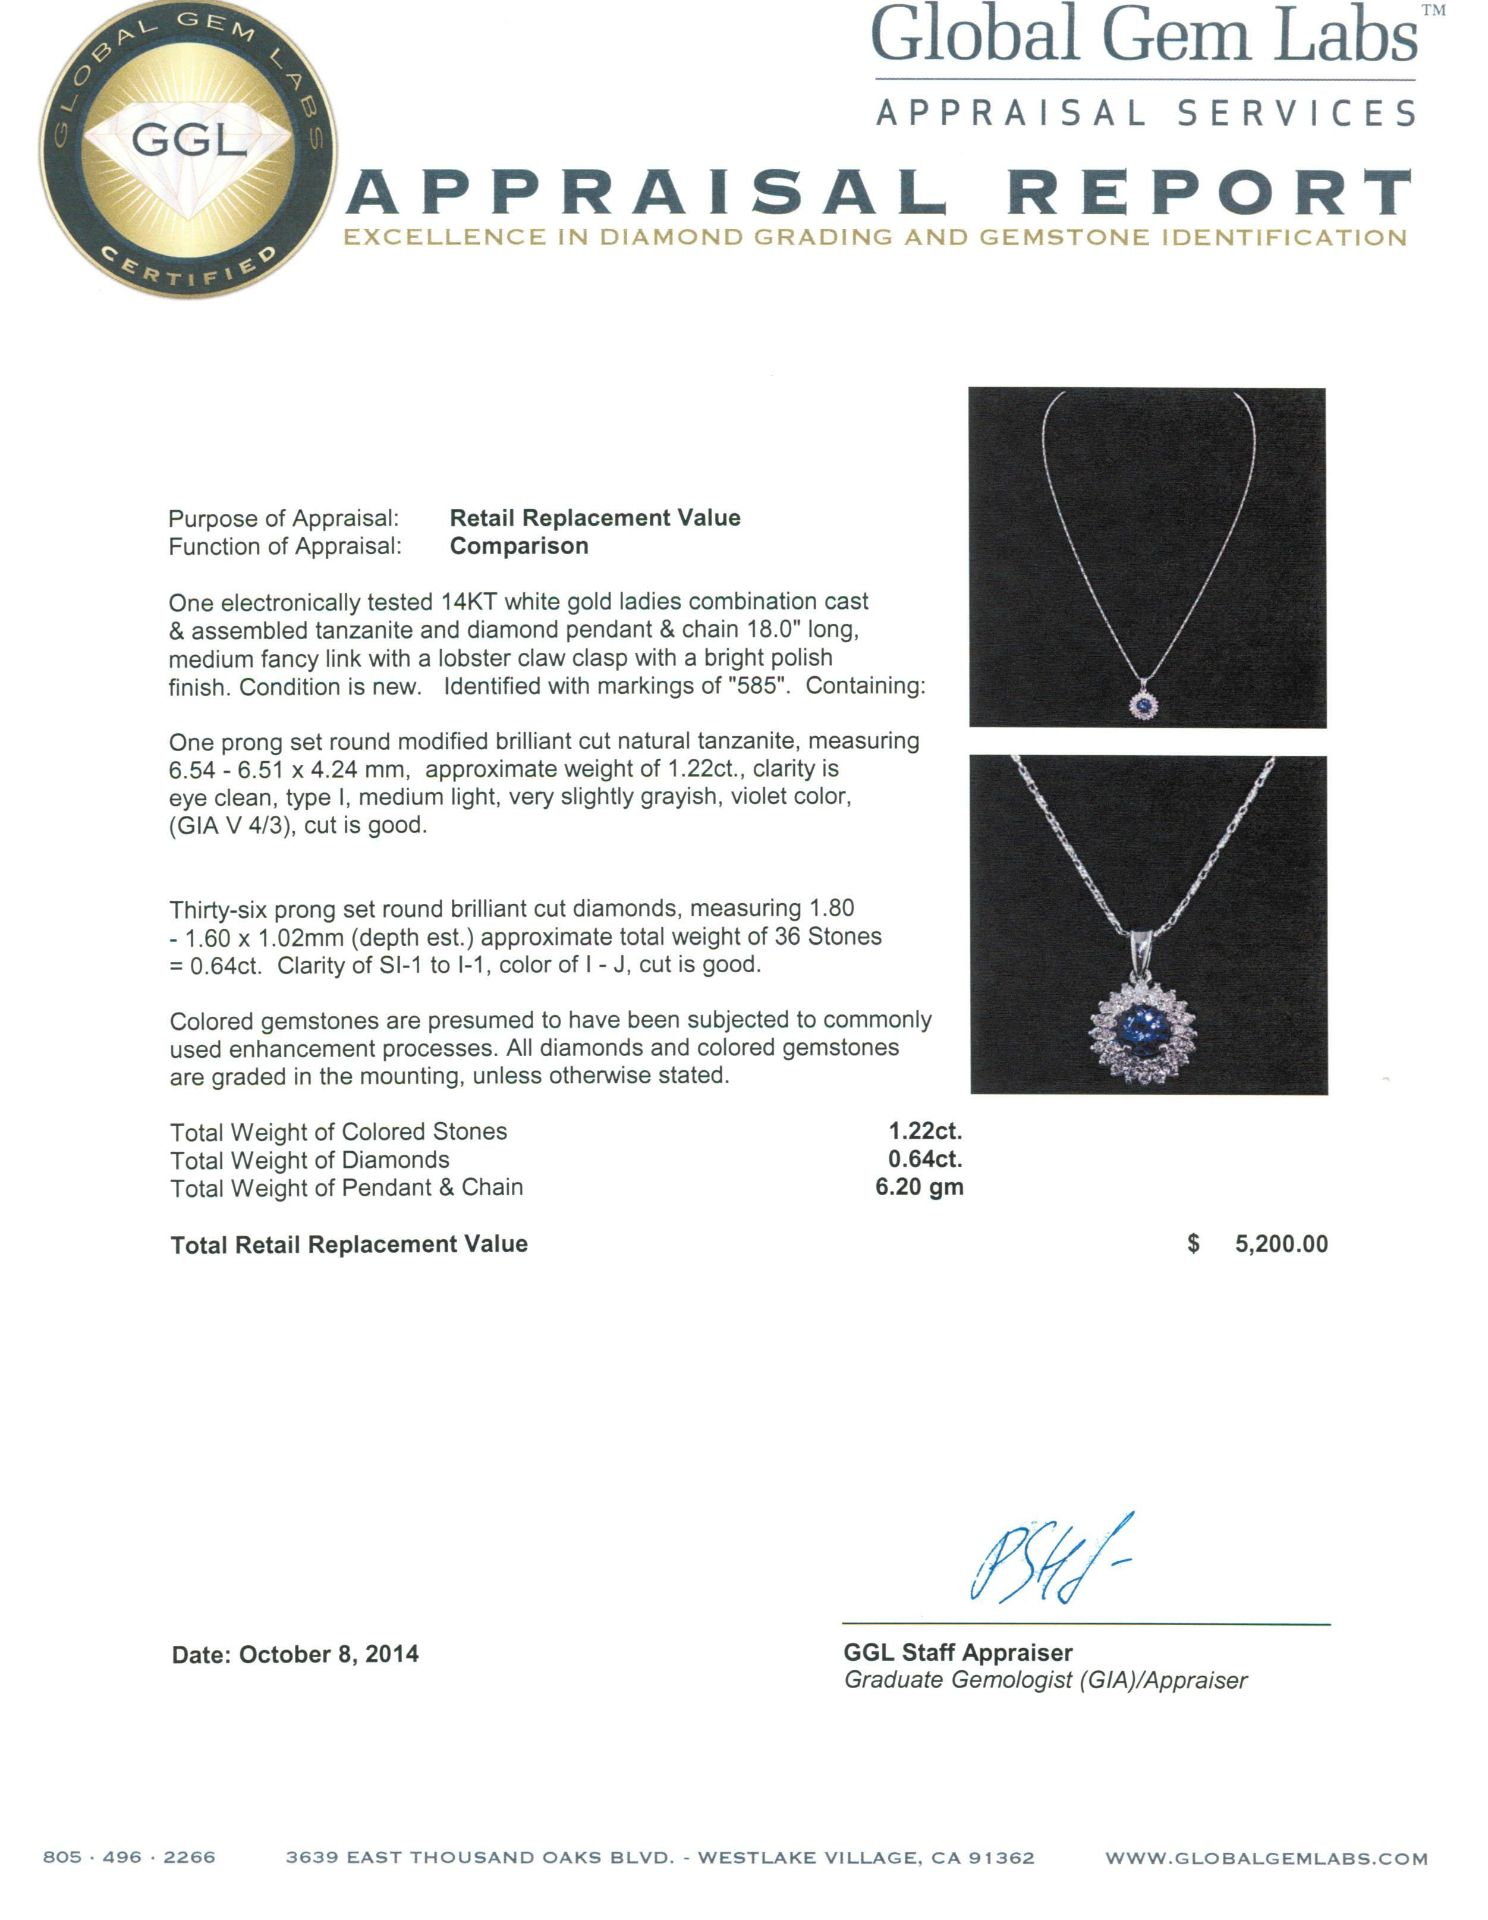 14KT White Gold 1.22 ctw Tanzanite and Diamond Pendant With Chain - Image 3 of 3